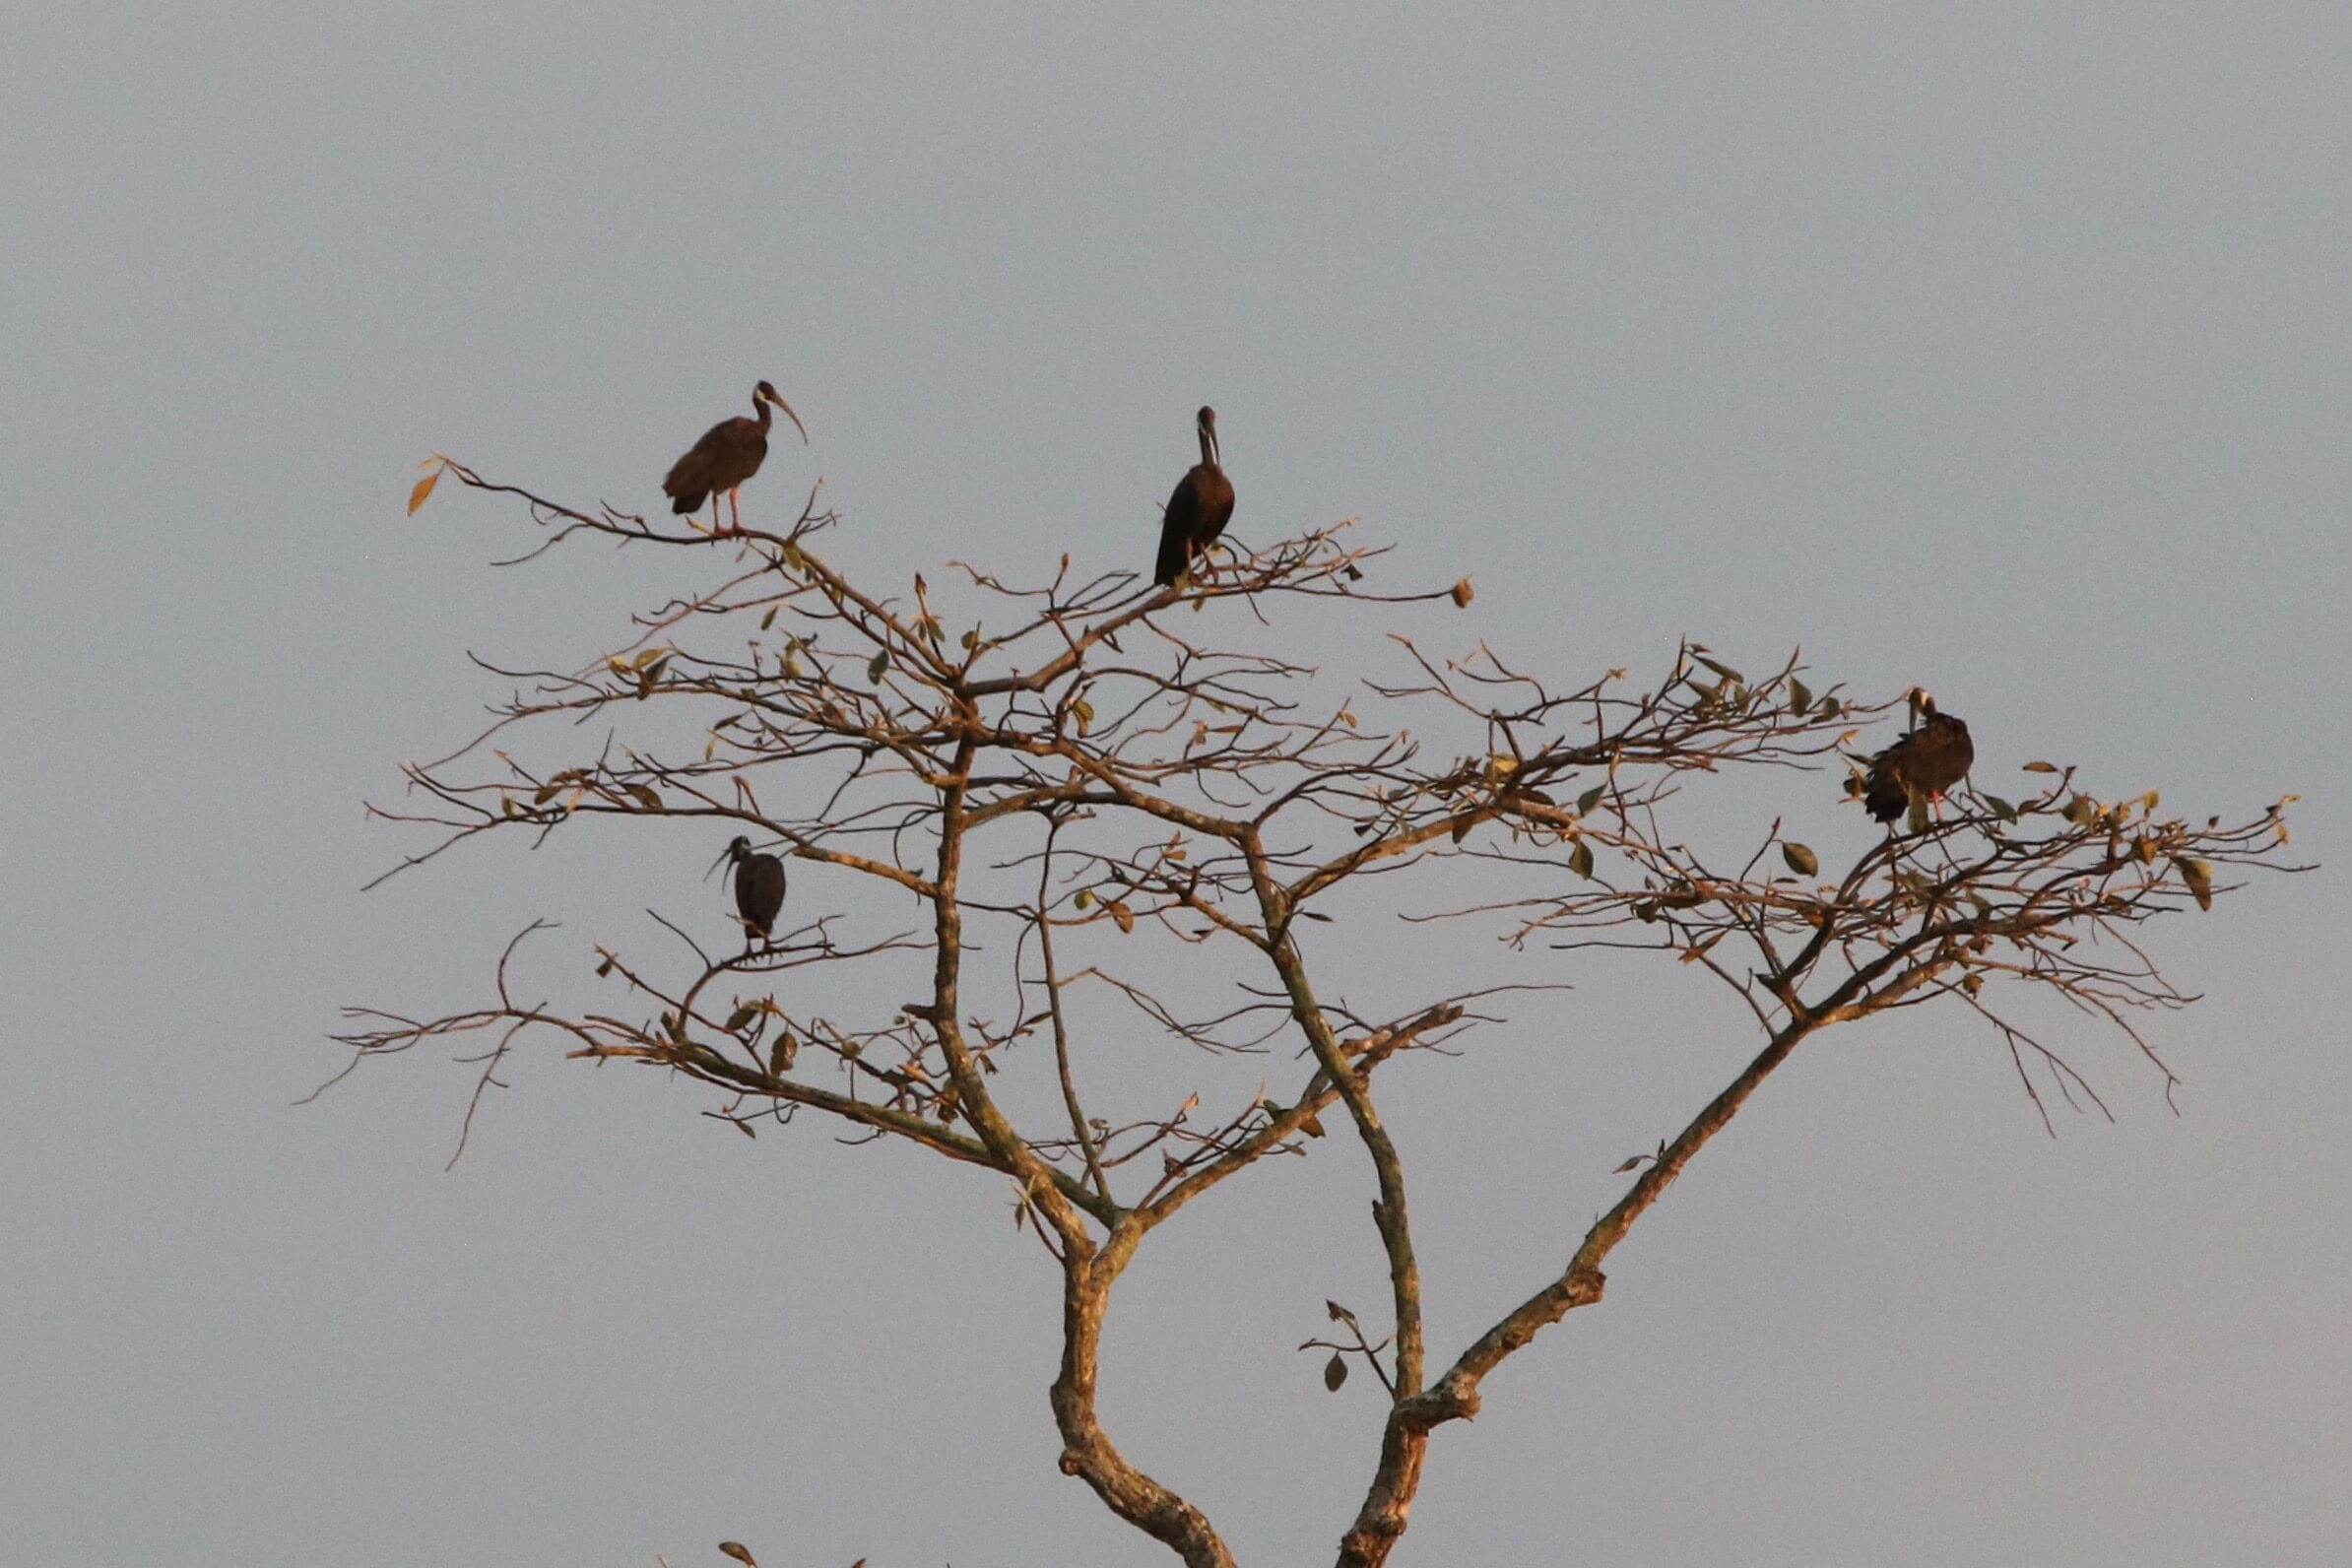 Four large birds with long beaks in tree.